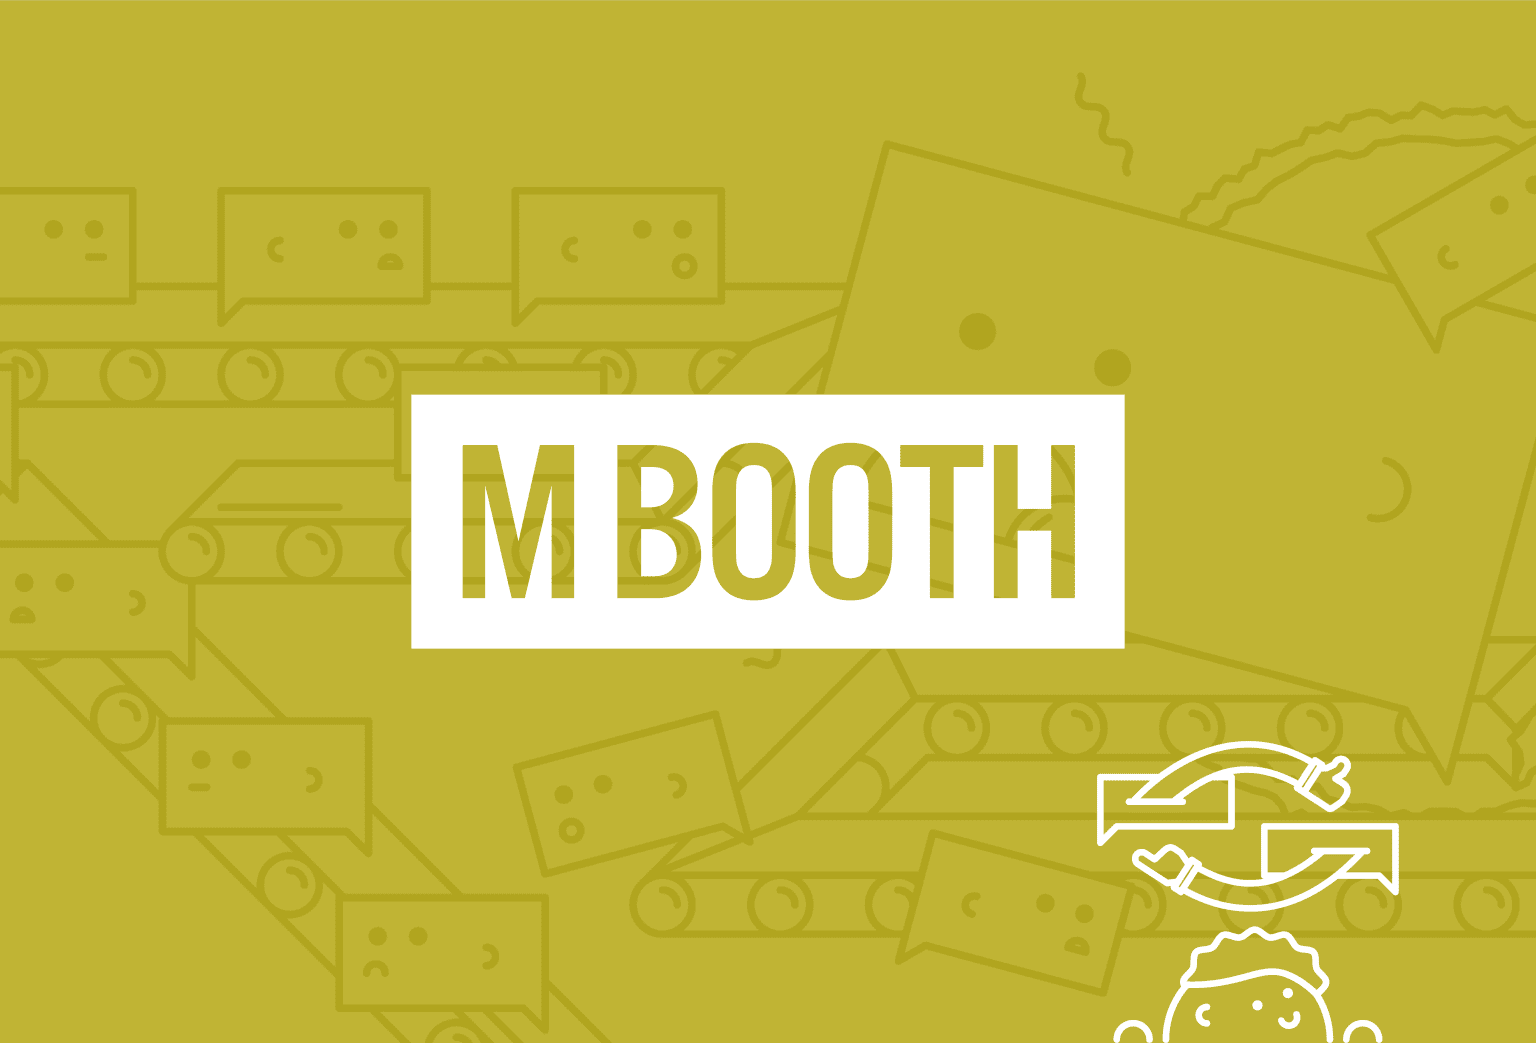 M Booth Brand Expansion + Presentation System